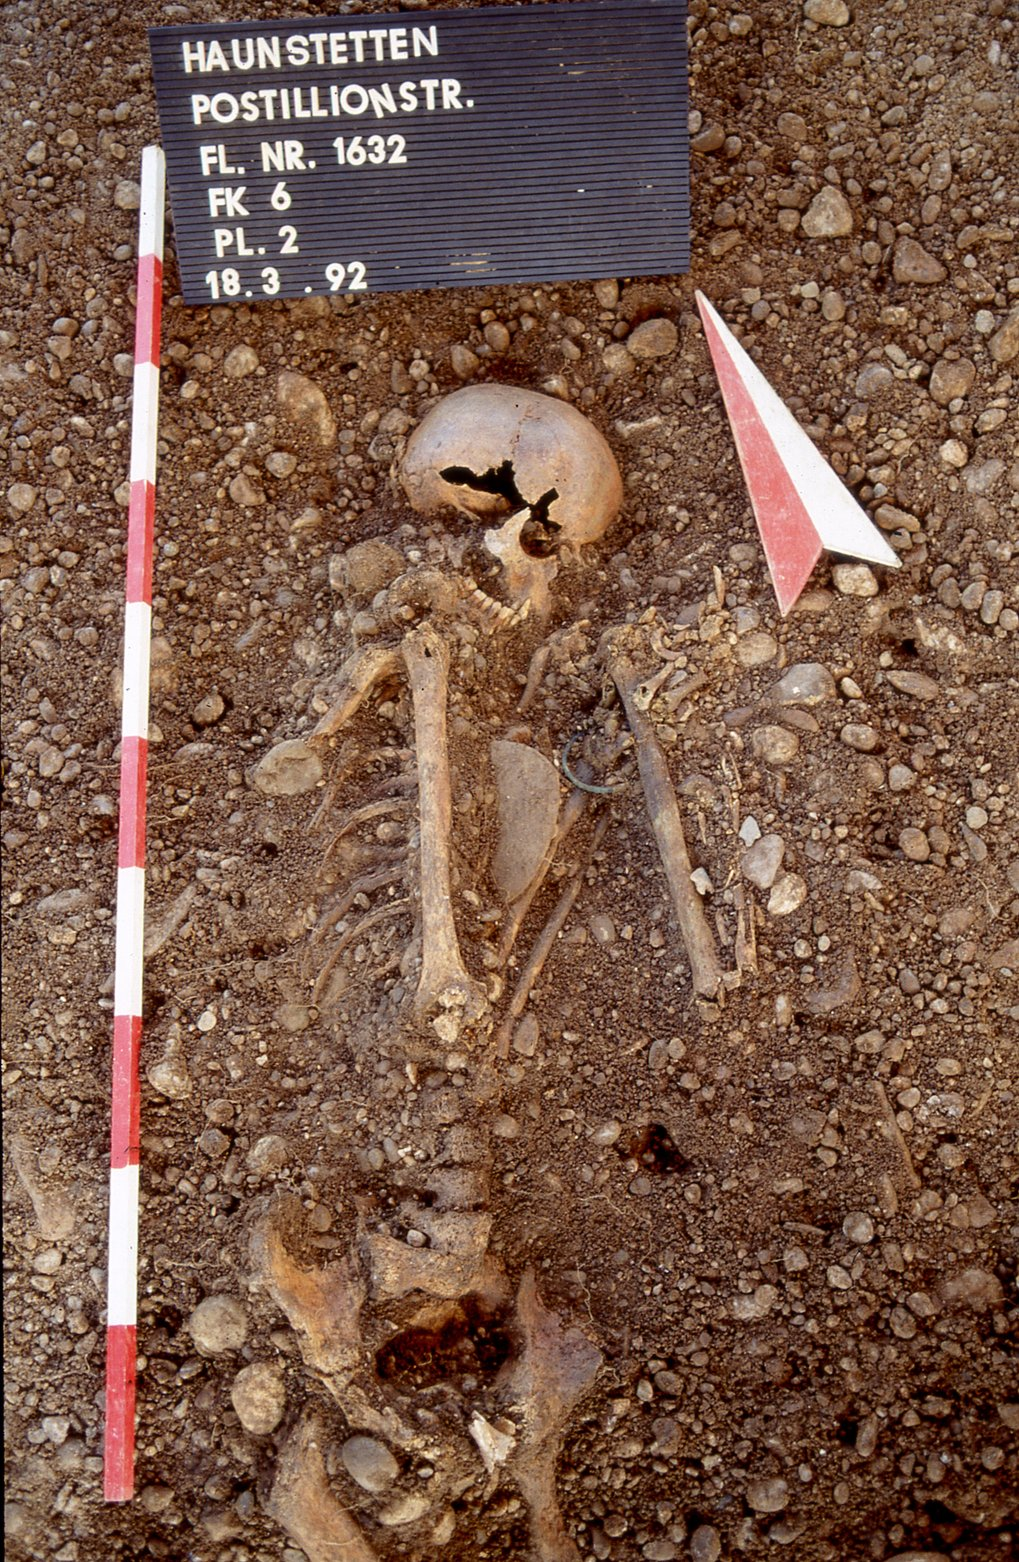 A male individual (6Post) from the Haunstetten Postillionstraße site, with a dagger, flint arrow heads, bracelet and bone pin.